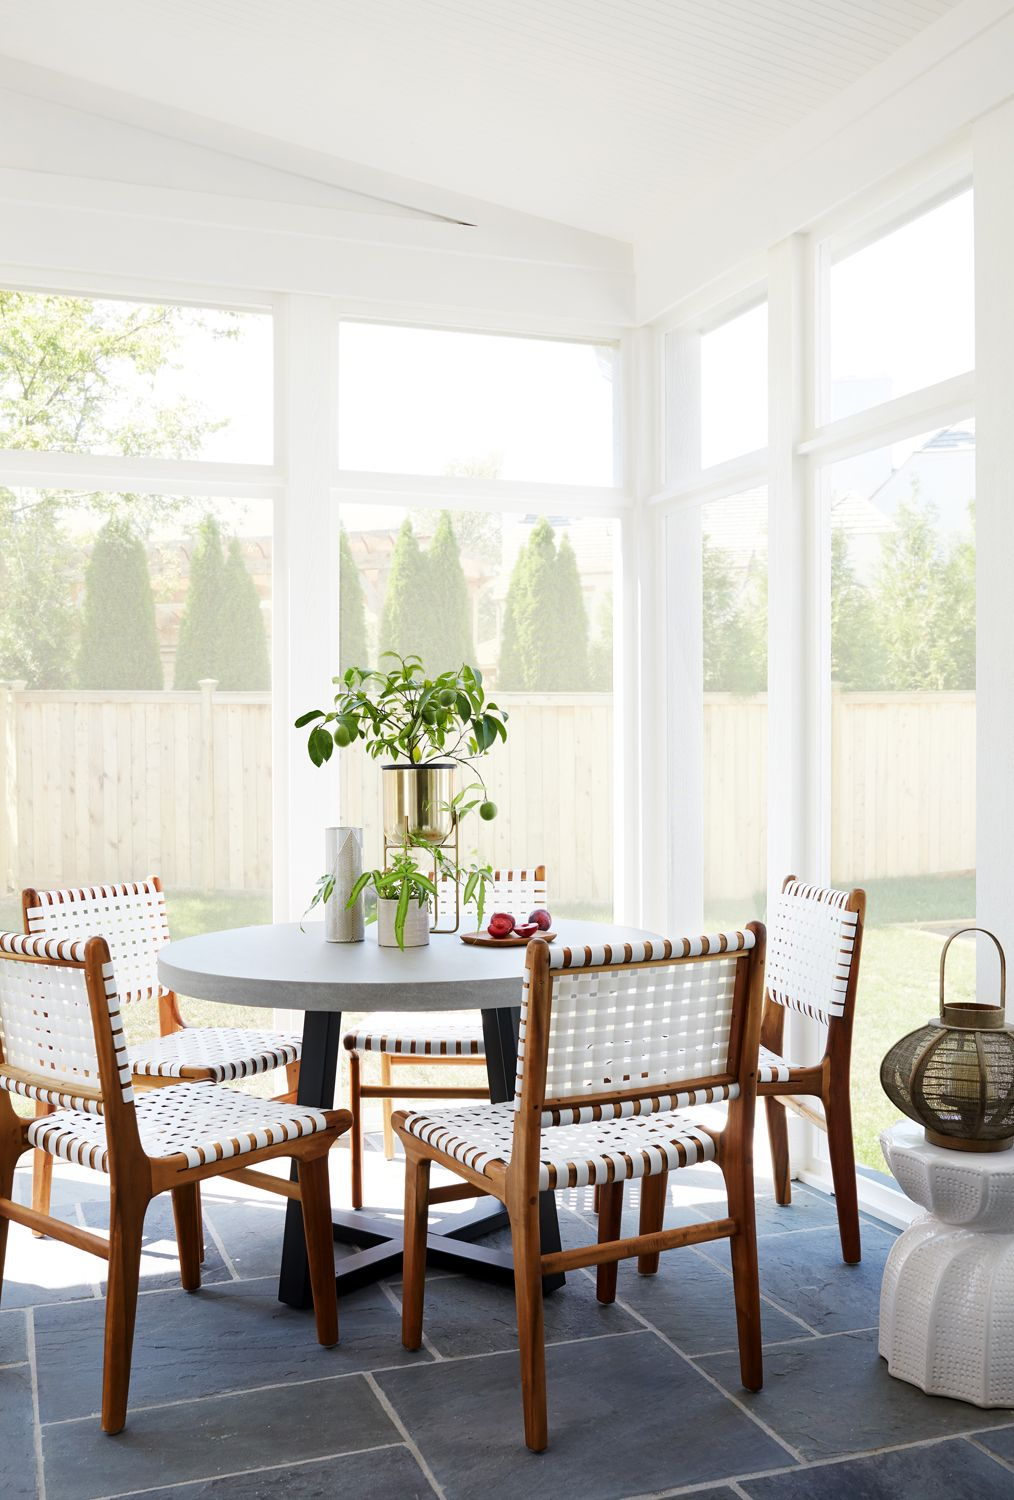 Home Design Ideas for the Modern House   Dining nook, Chevy chase ...